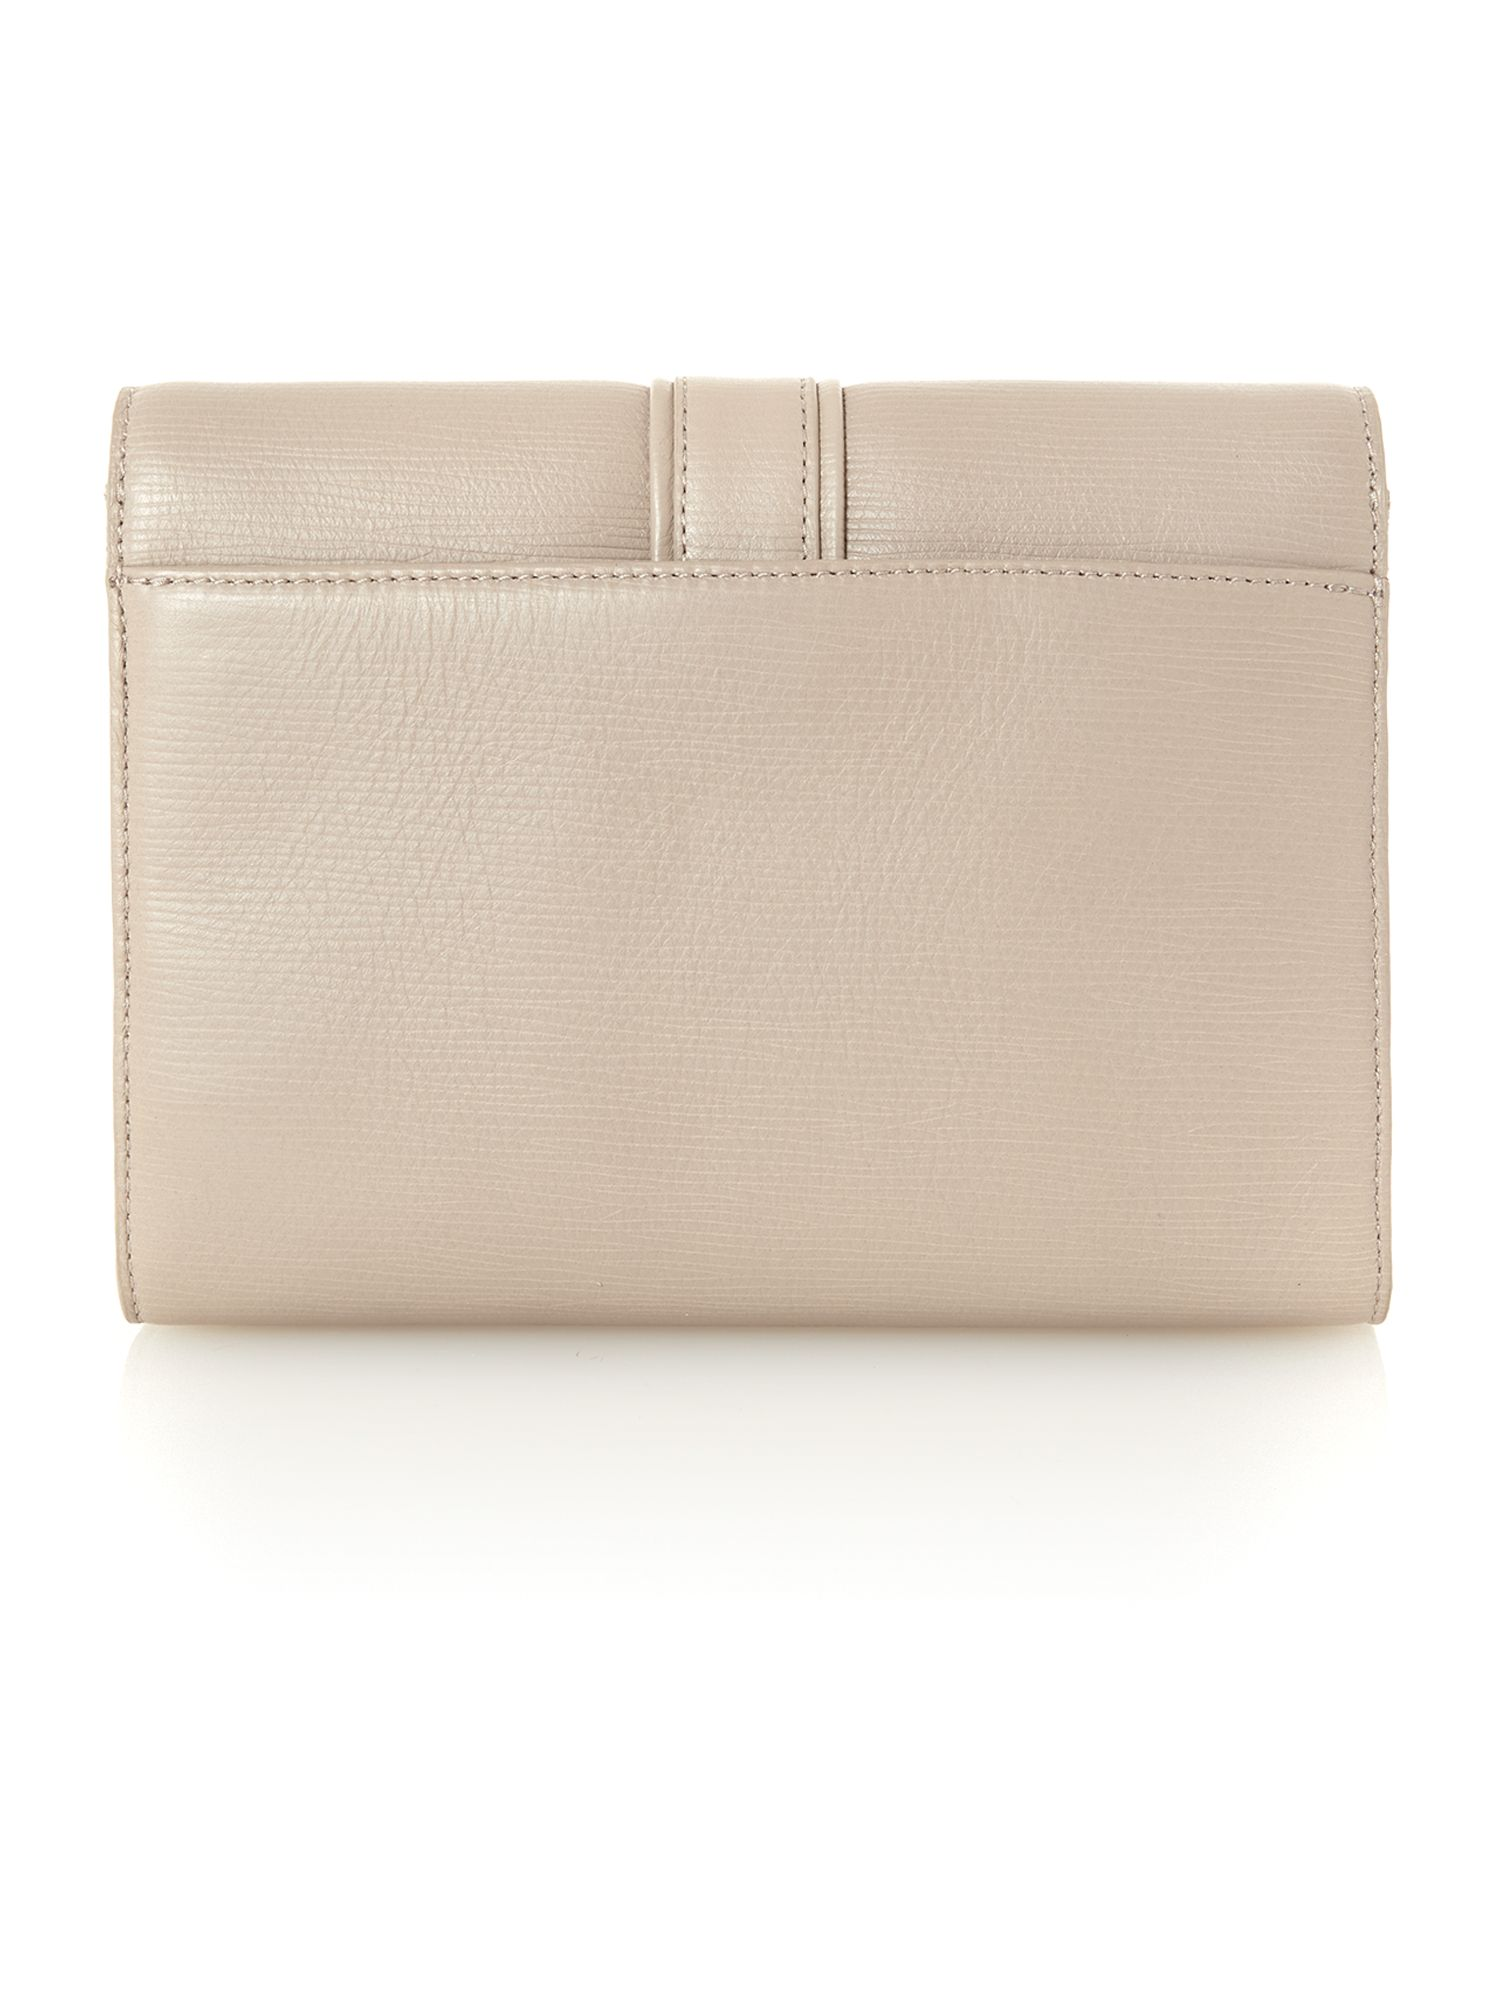 Neutral cross body bag